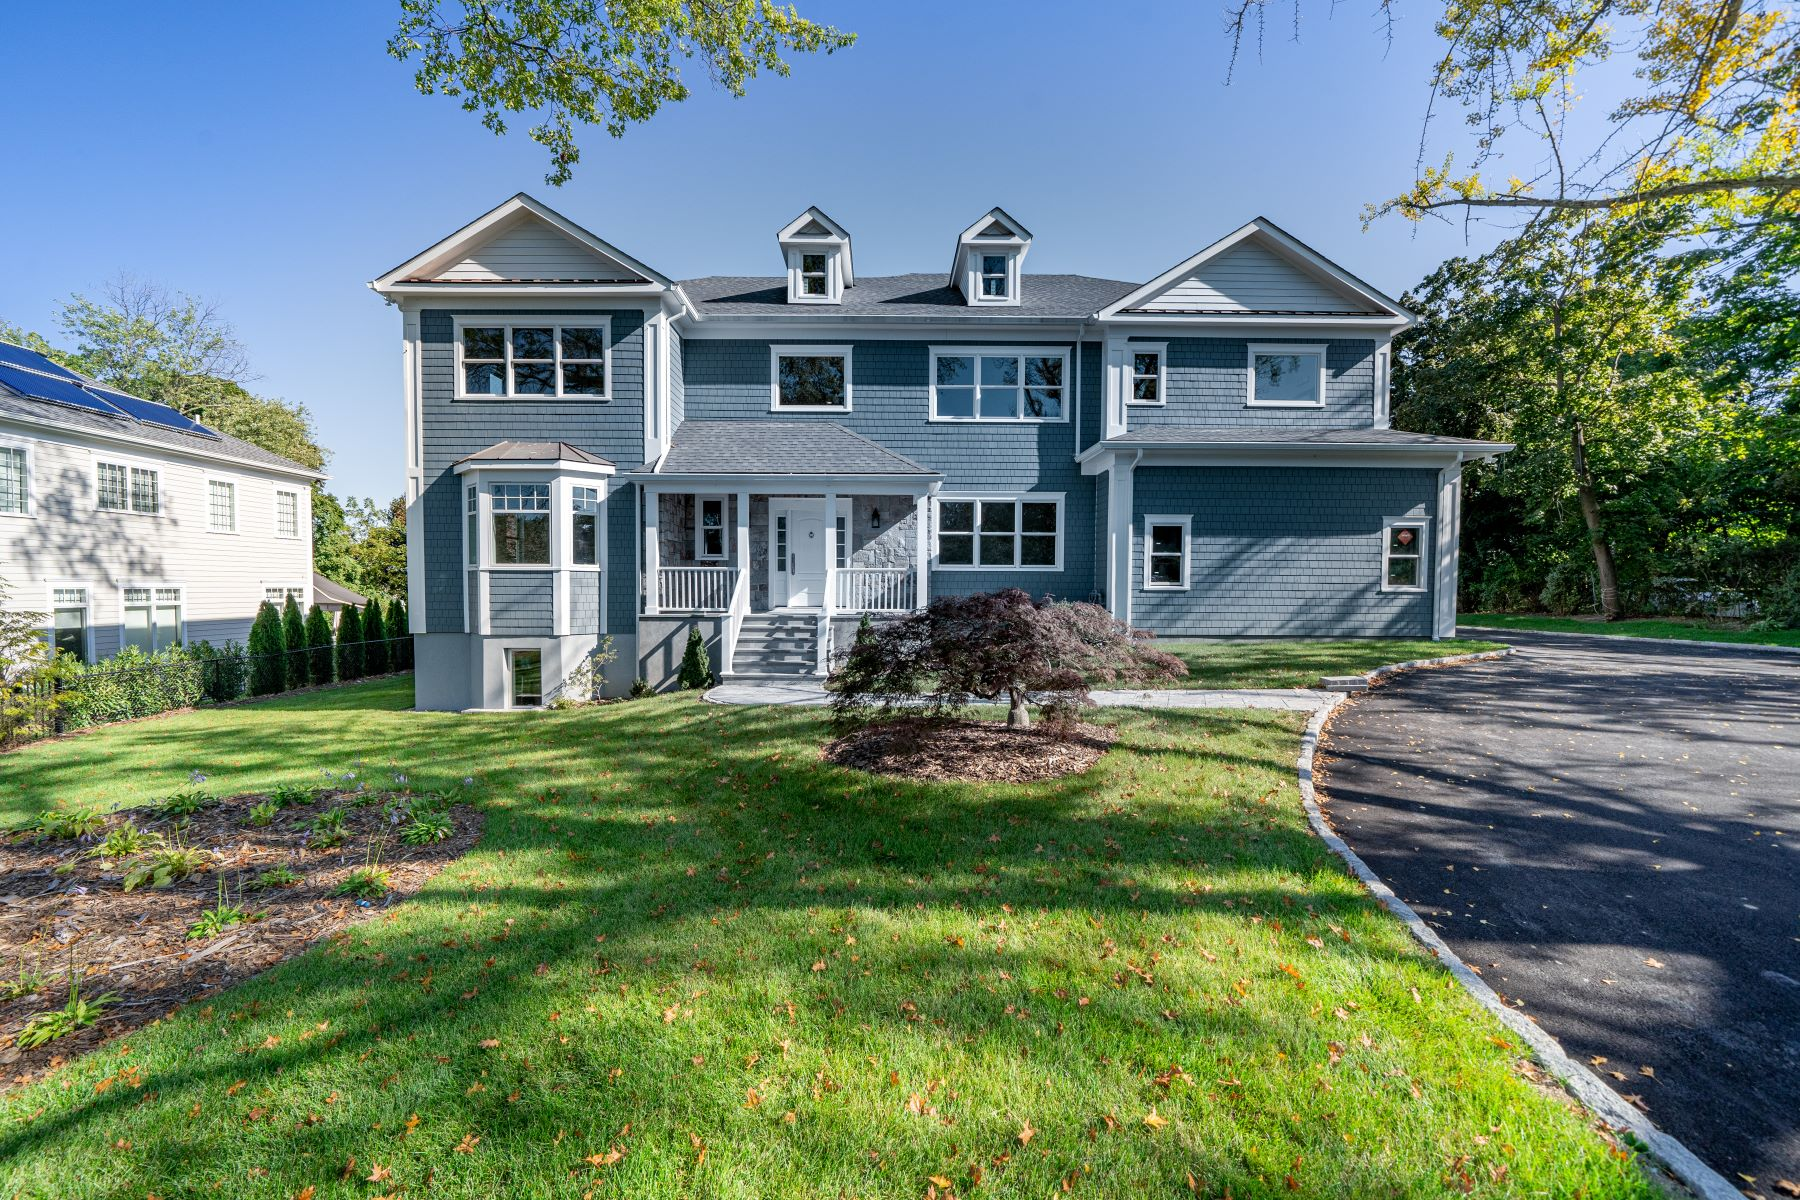 Single Family Homes for Sale at Sunny and Sophisticated New Construction 2 Fairway Drive Mamaroneck, New York 10543 United States